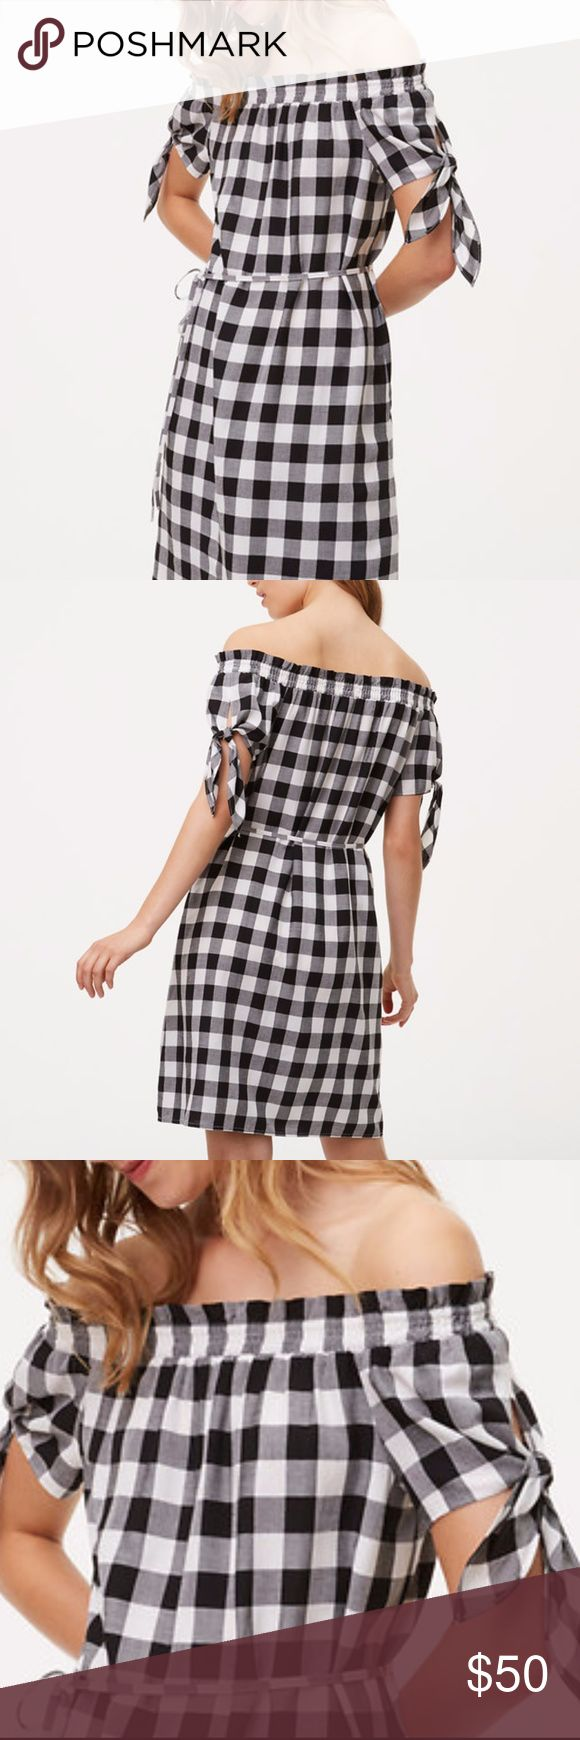 Ann TAYLOR GINGHAM Black & White of Shoulder DRESS Only worn one time ;-)  So Adorable & Comfy!  GINGHAM Black & White TIE of Shoulder DRESS   Size: XSP  Perfect Condition  Thanks for looking Ann Taylor Dresses Mini